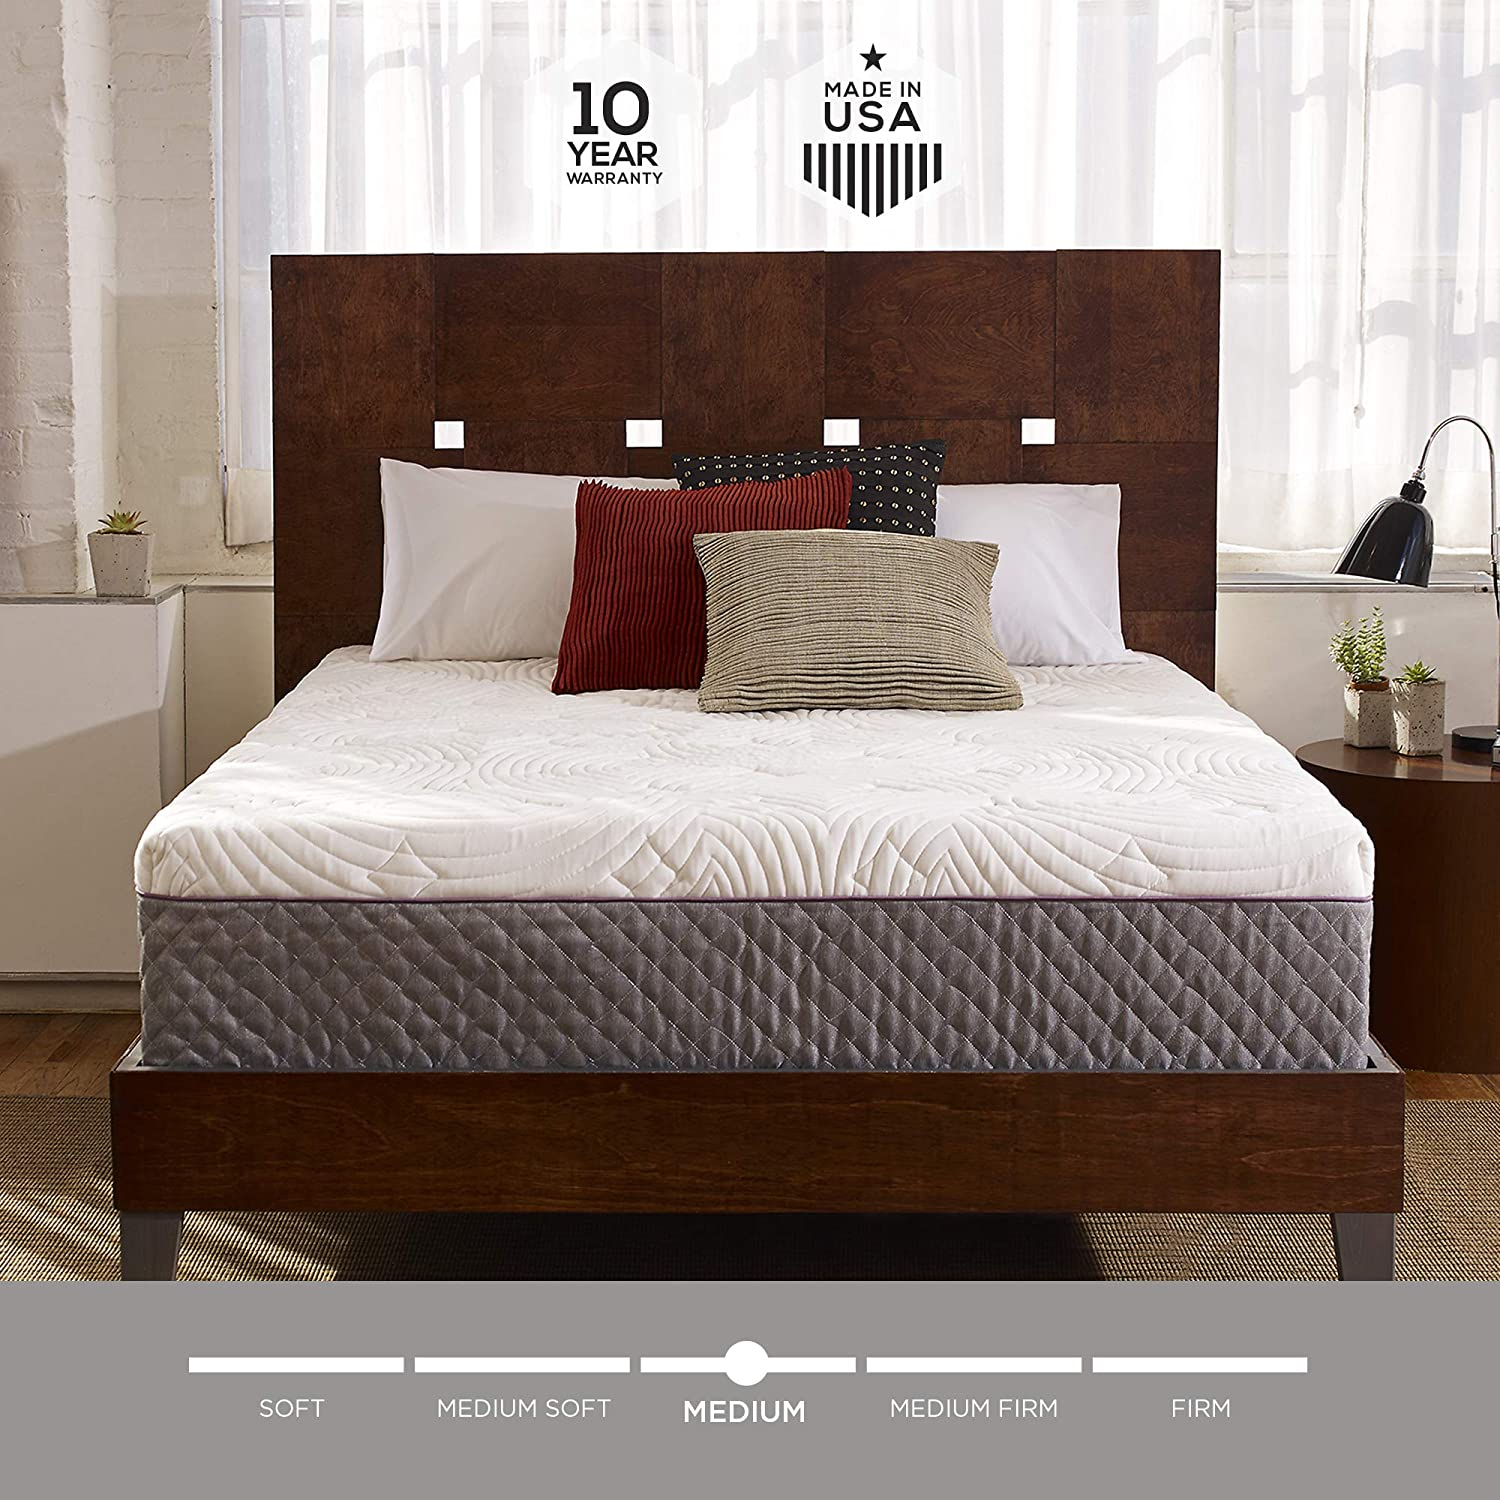 Sleep Innovations Shiloh 12-inch Memory Foam Mattress, Bed in a Box, Quilted Cover, Made in The USA, 10-Year Warranty - Queen Size sleep mattress Sleep Mattress – Factors in Choosing the Best For You 813LbYl4OgL